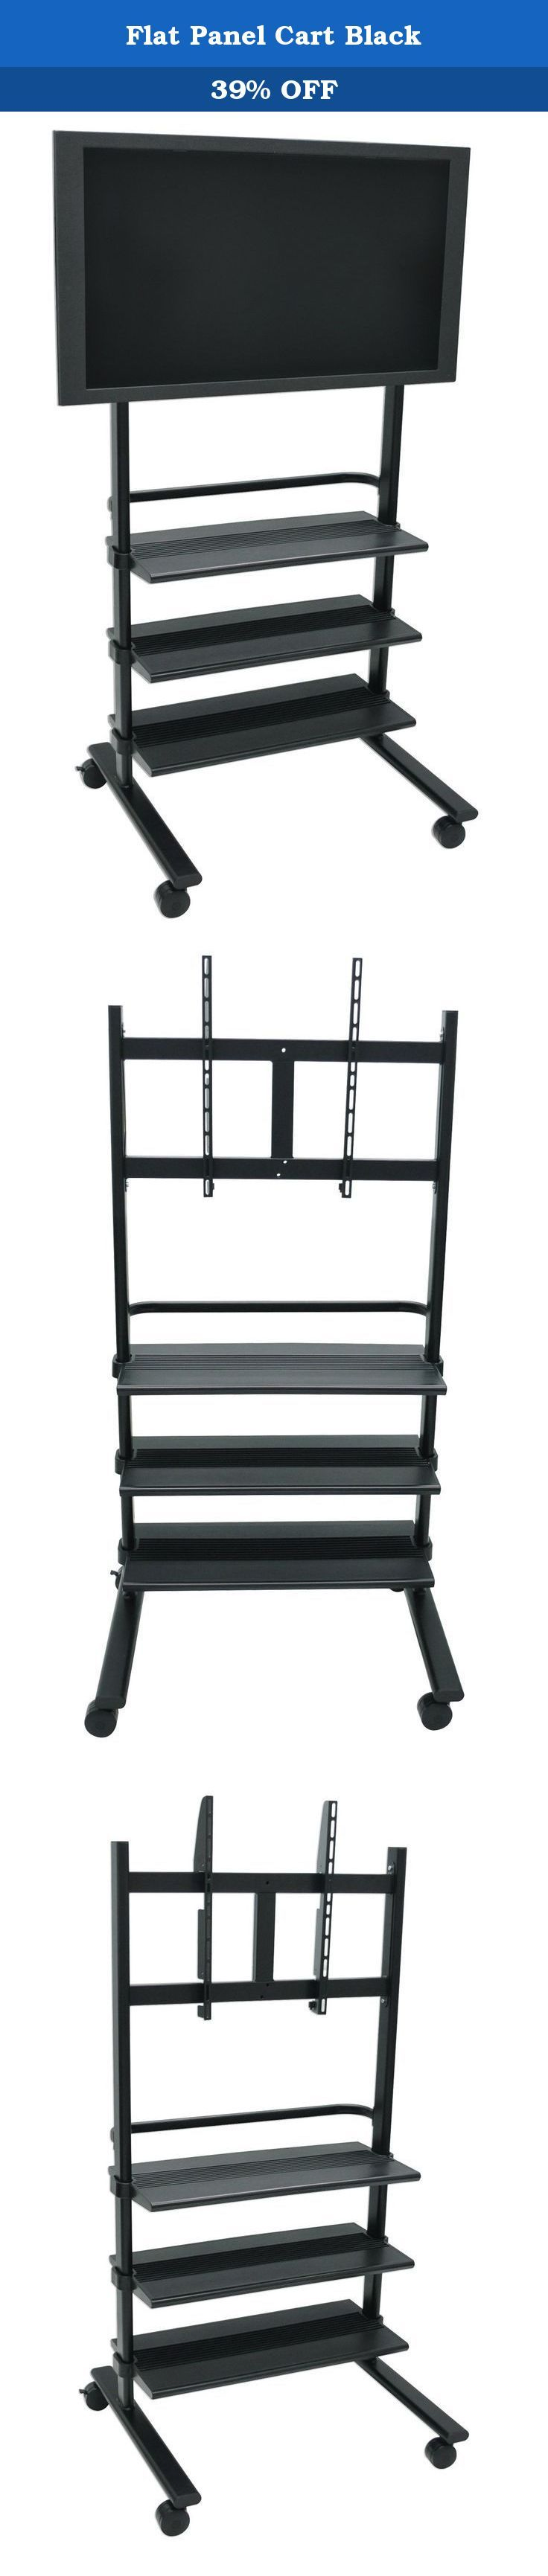 """Flat Panel Cart Black. H Wilson's WFP100 is a universal flat panel stand. The mount will accommodate up to a 32""""- 60"""" display. The WFP100 has a large footprint that provides stability and prevents tipping. The spacious three plastic shelves measure 29.5""""W x 14"""" D. The handle is built in for easy mobility. 3"""" easy roll casters. Easy Assembly. Lifetime warranty. Sturdy metal frame with black finish. Heavy-duty plastic shelves with textured surface to prevent equipment from sliding. Each…"""